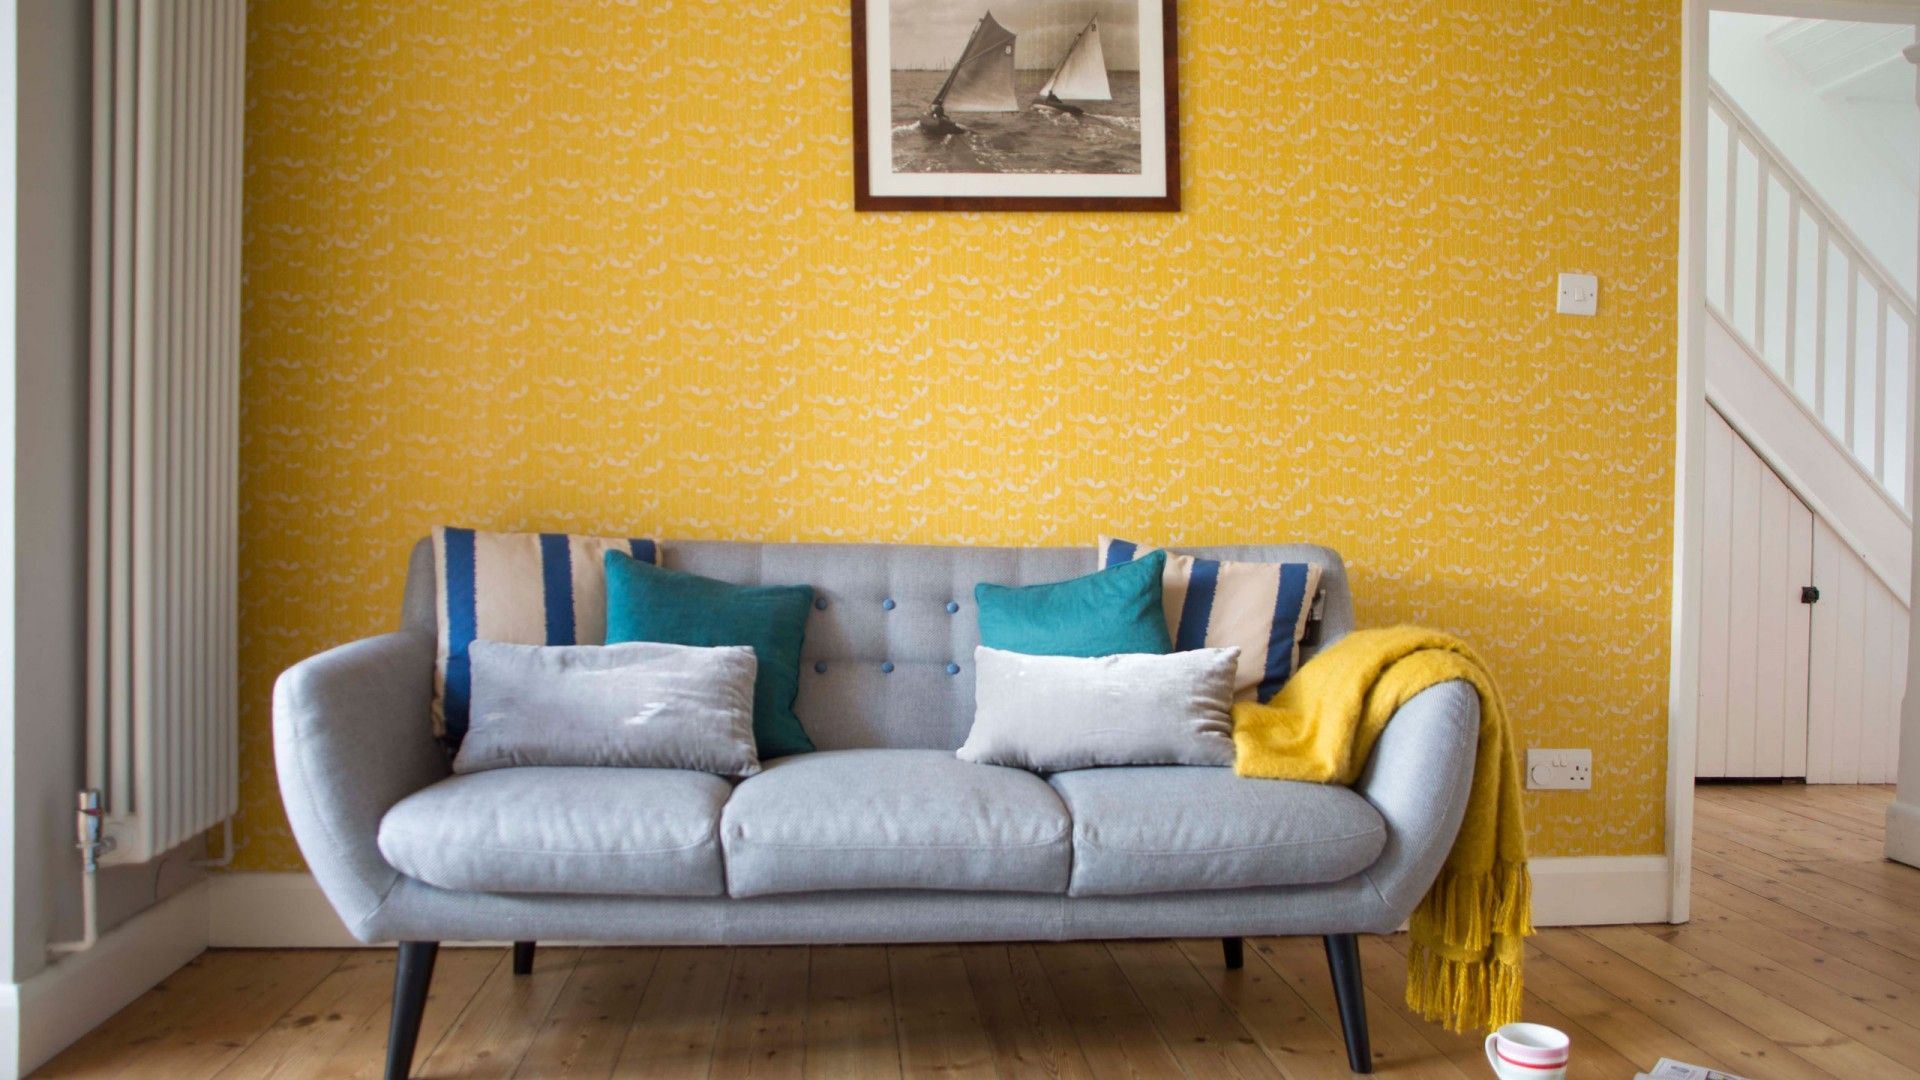 Modern mid century living room with yellow wallpaper | Linz and Mart ...